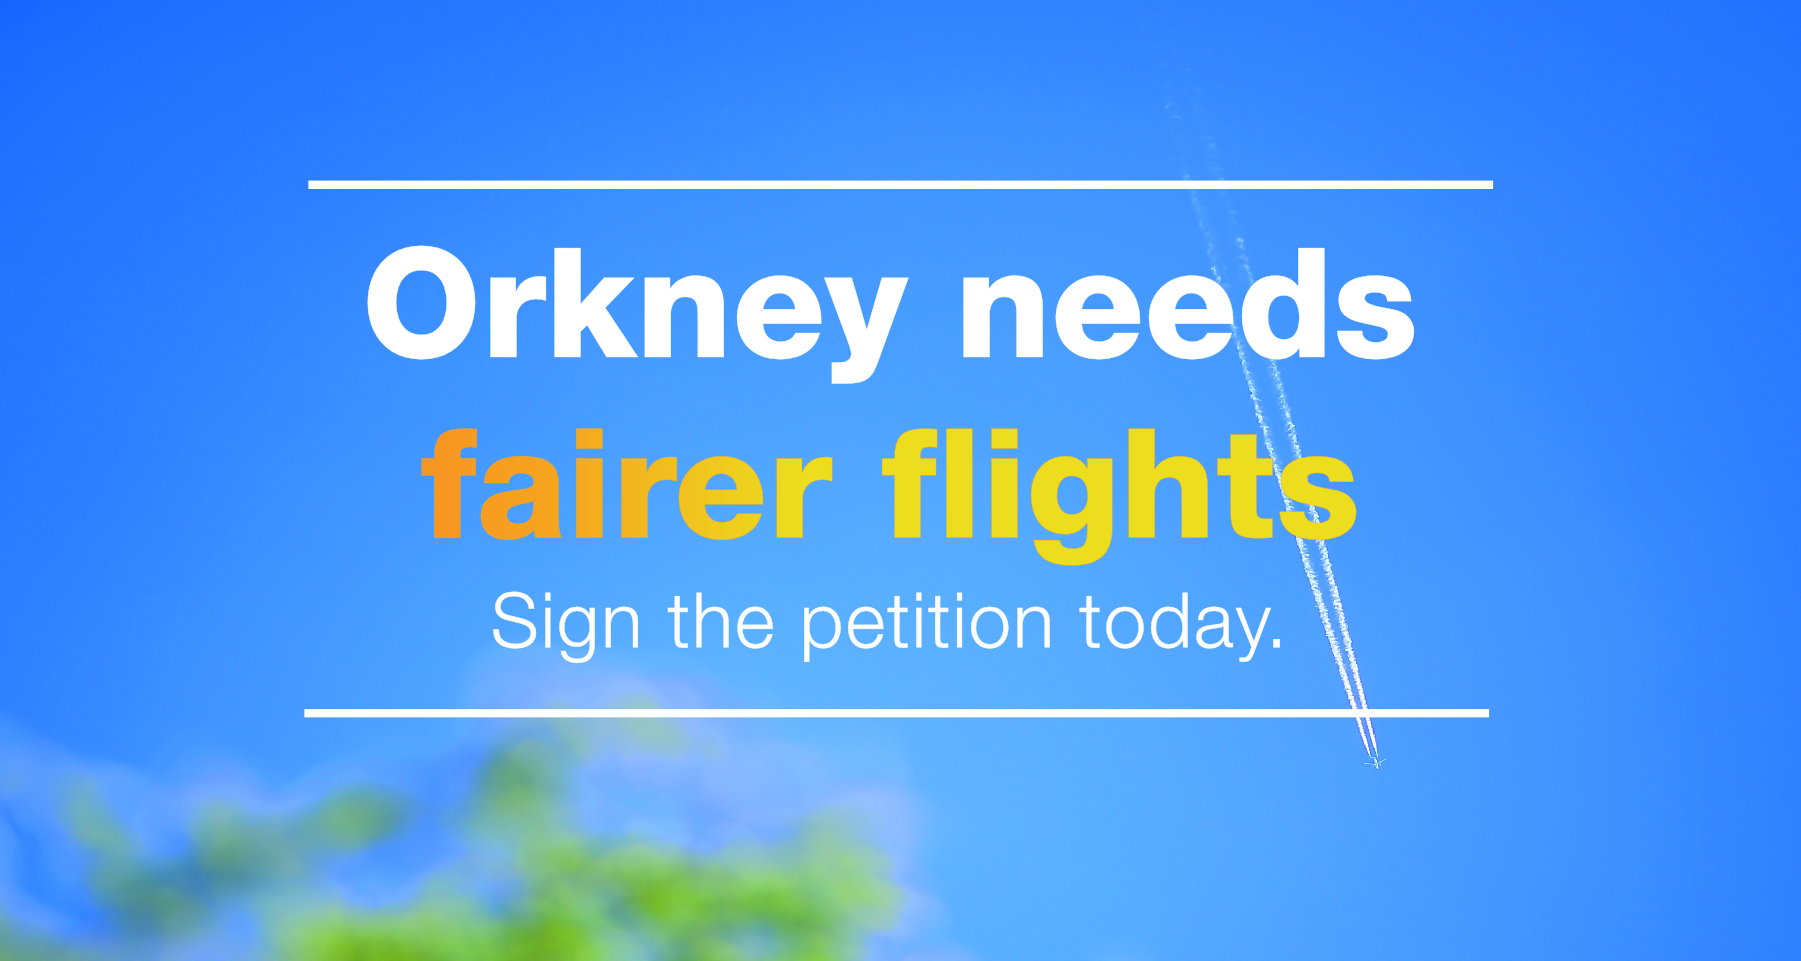 Fight for Fairer Flights